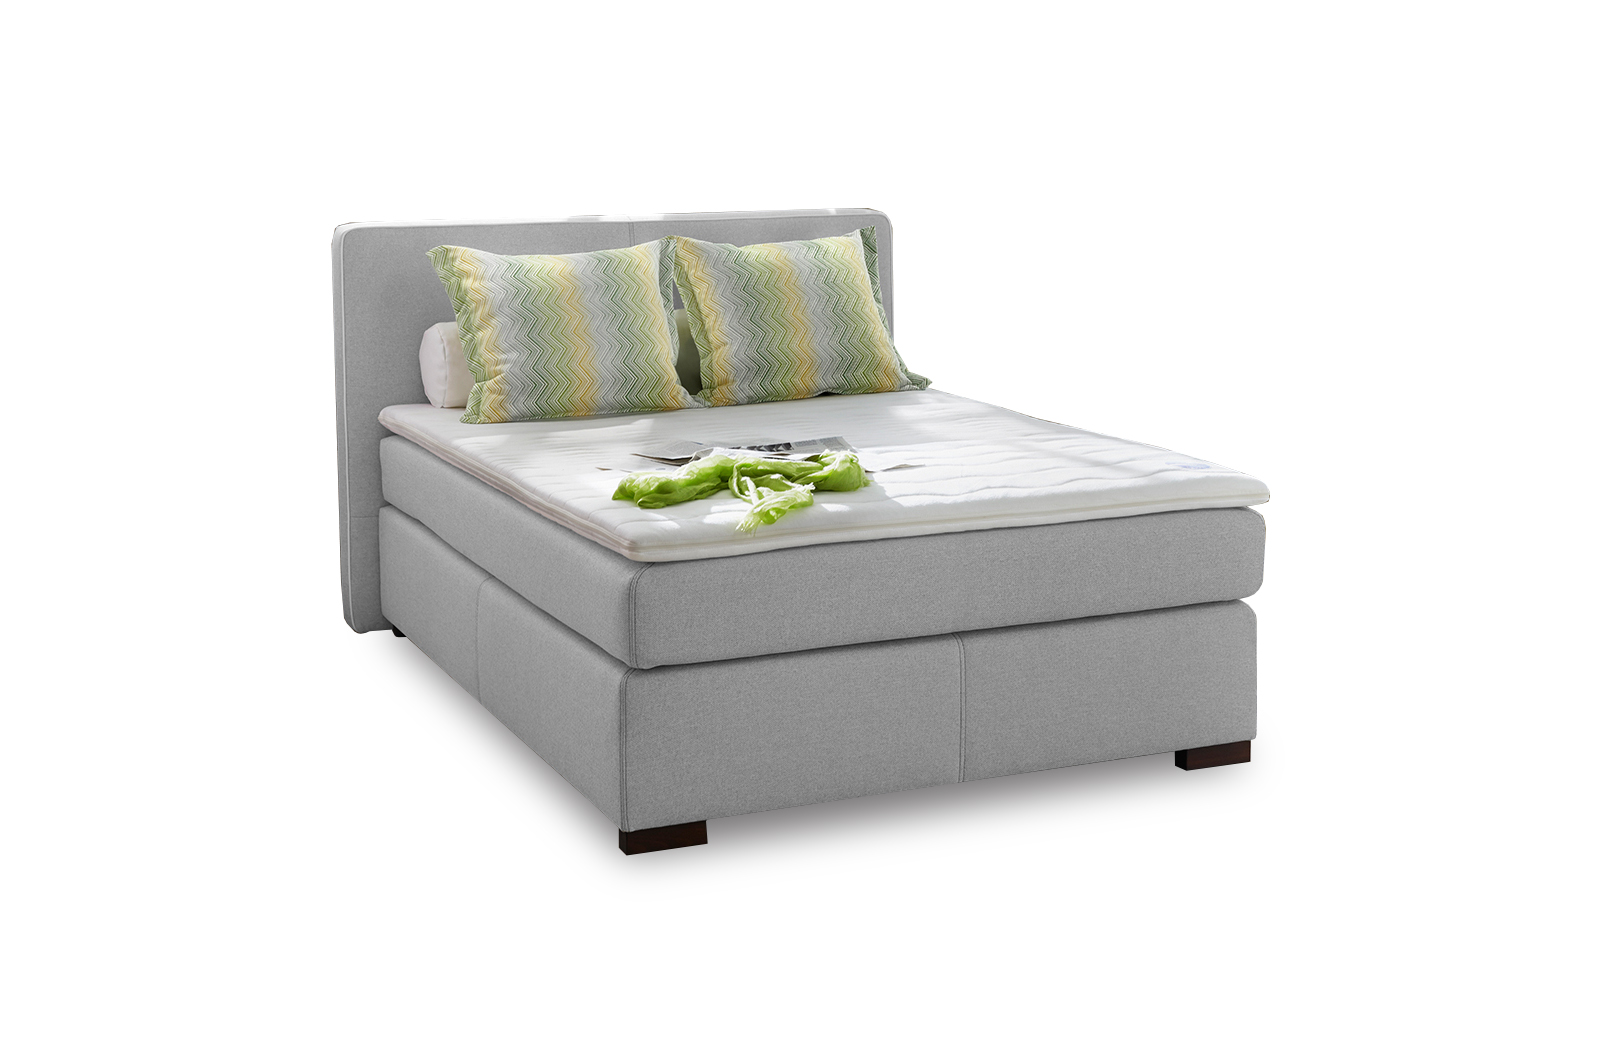 jockenh fer boxspringbett isabel in grau m bel letz ihr online shop. Black Bedroom Furniture Sets. Home Design Ideas